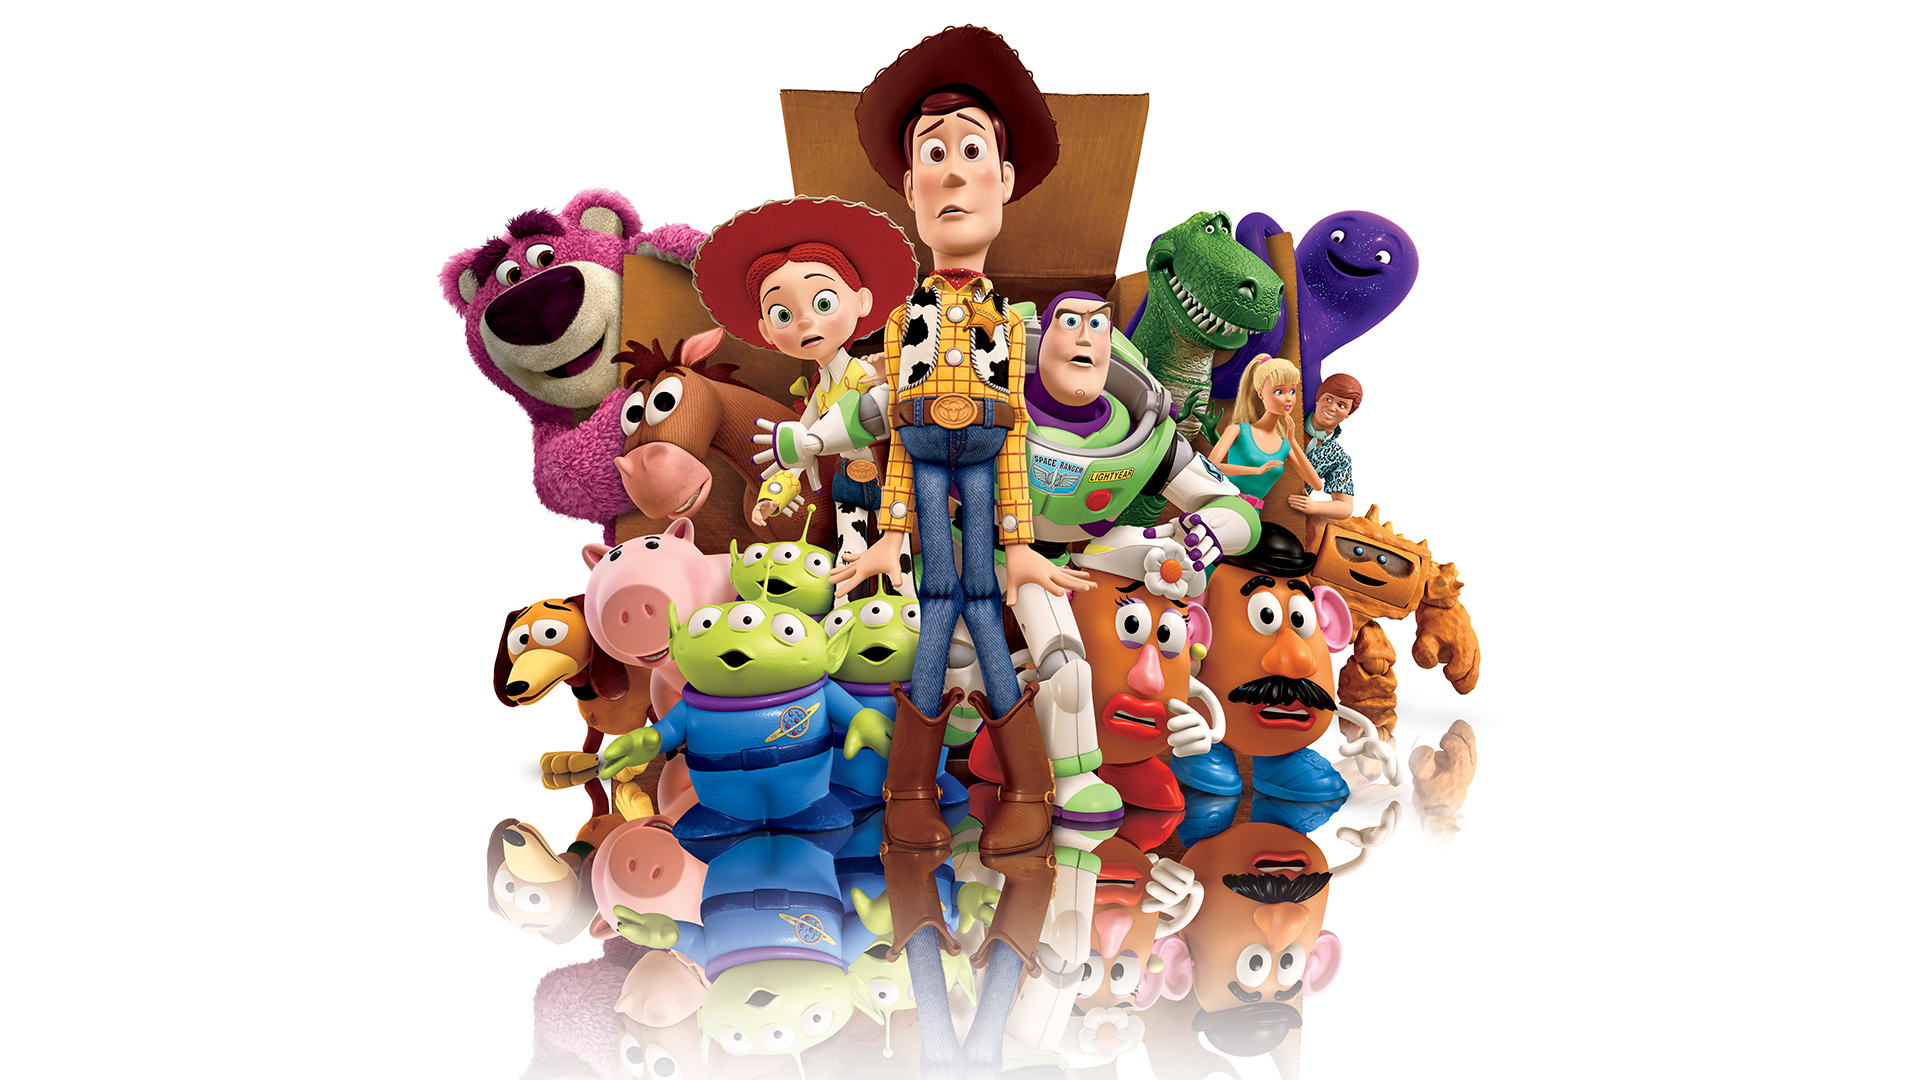 Why Not Choose This Bright Colourful And Totally Amazing Mural Decoration Featuring The Disney Toy Story XXL Wallpaper